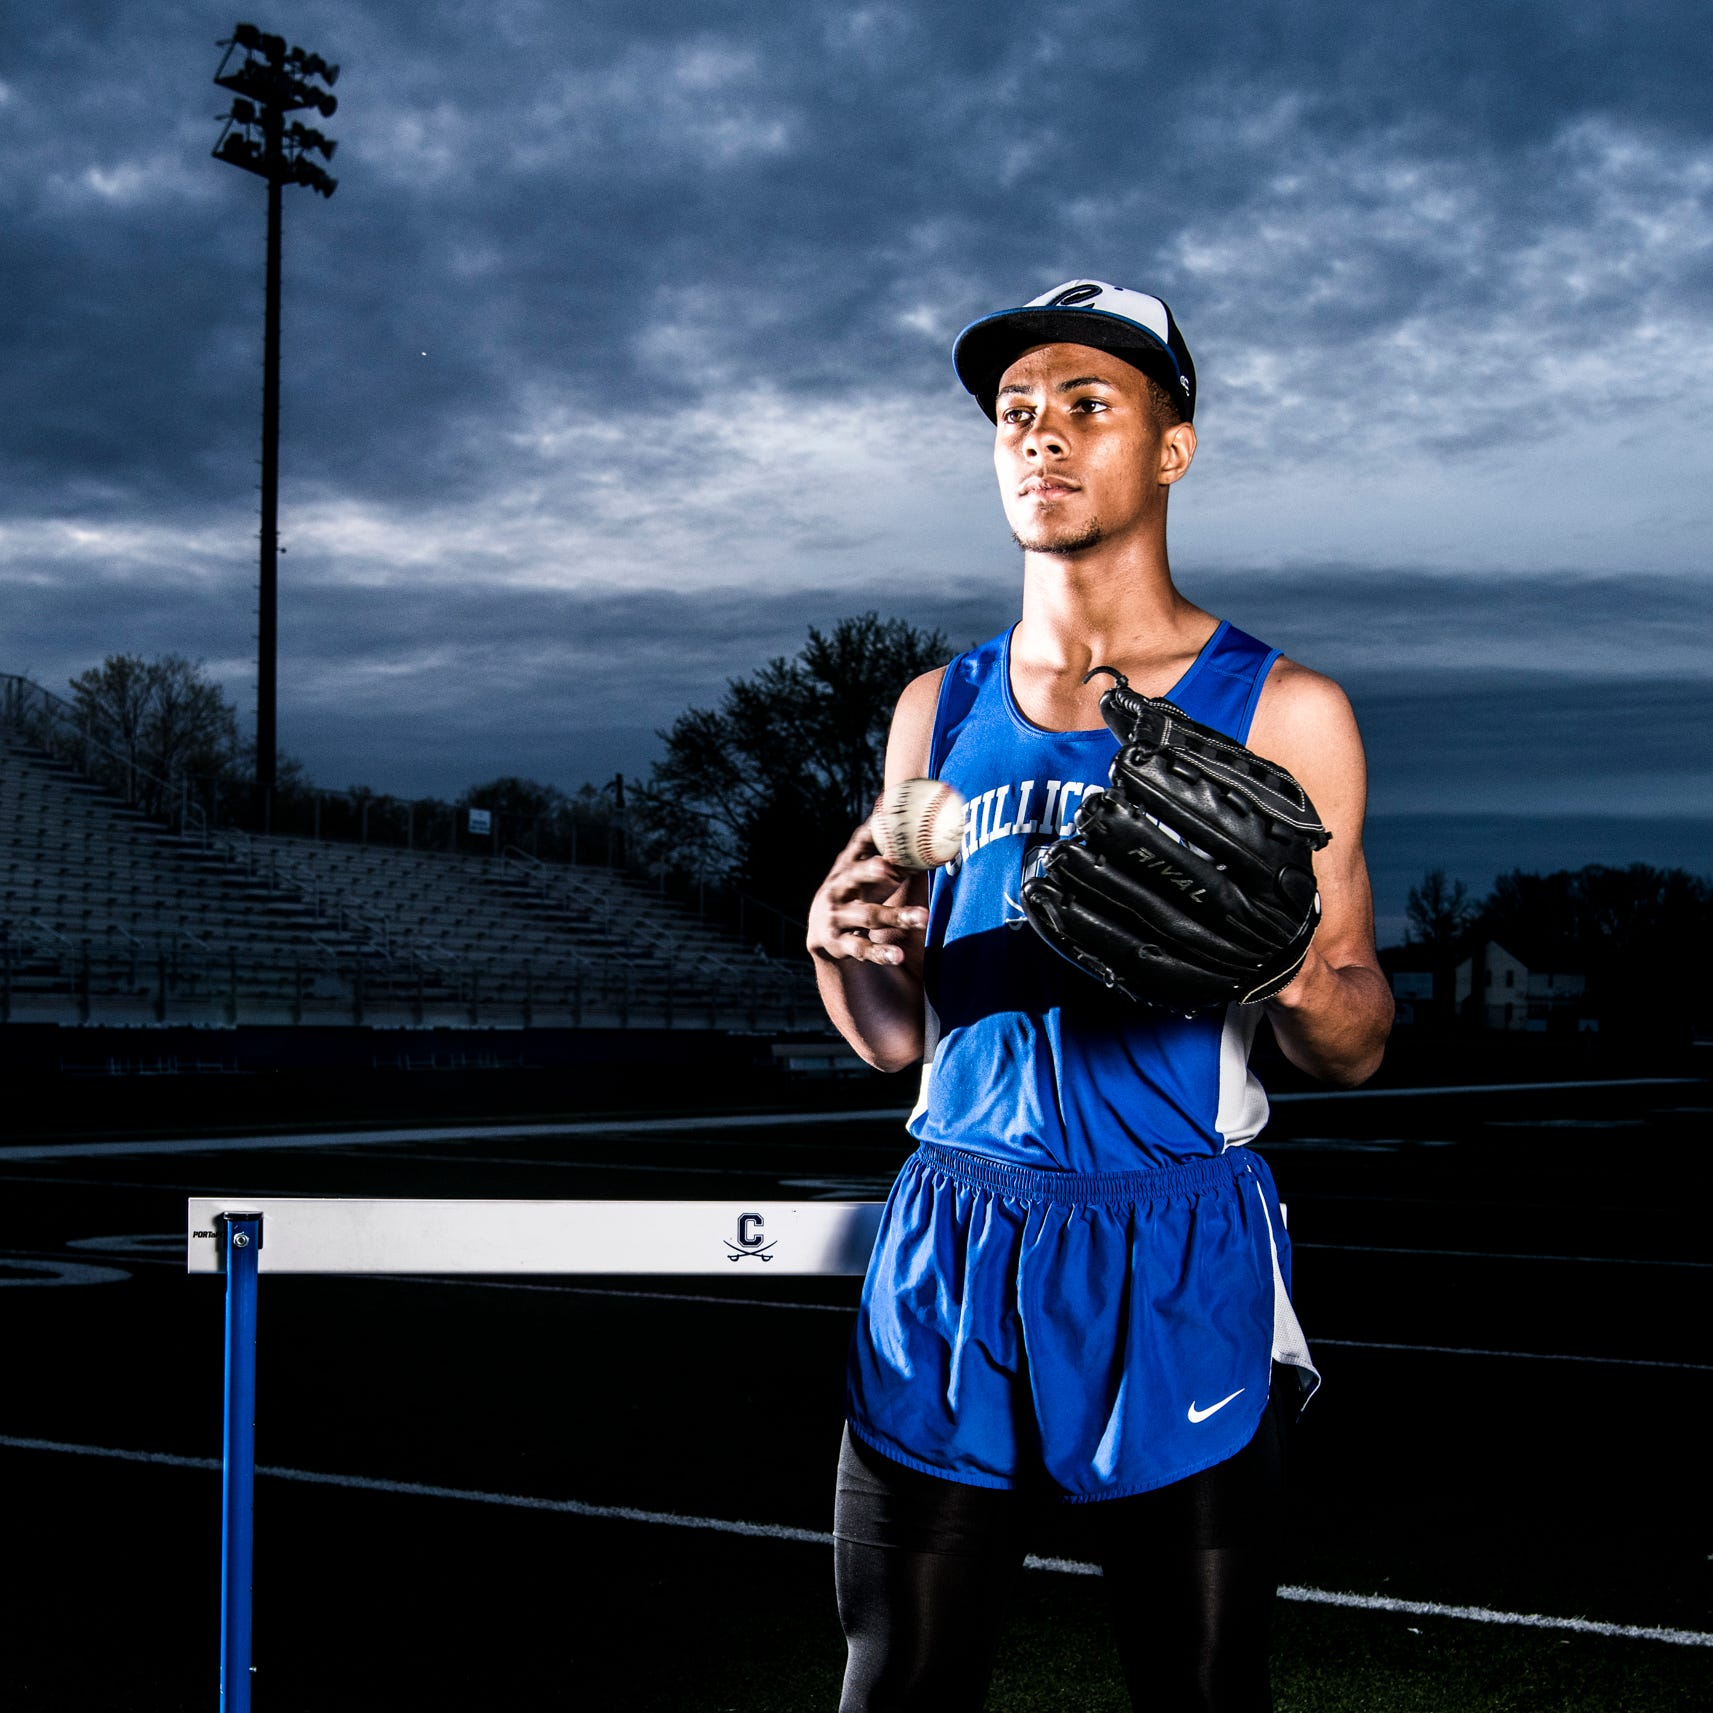 Chillicothe's J'Quan Harris using blazing speed to juggle baseball, track and field